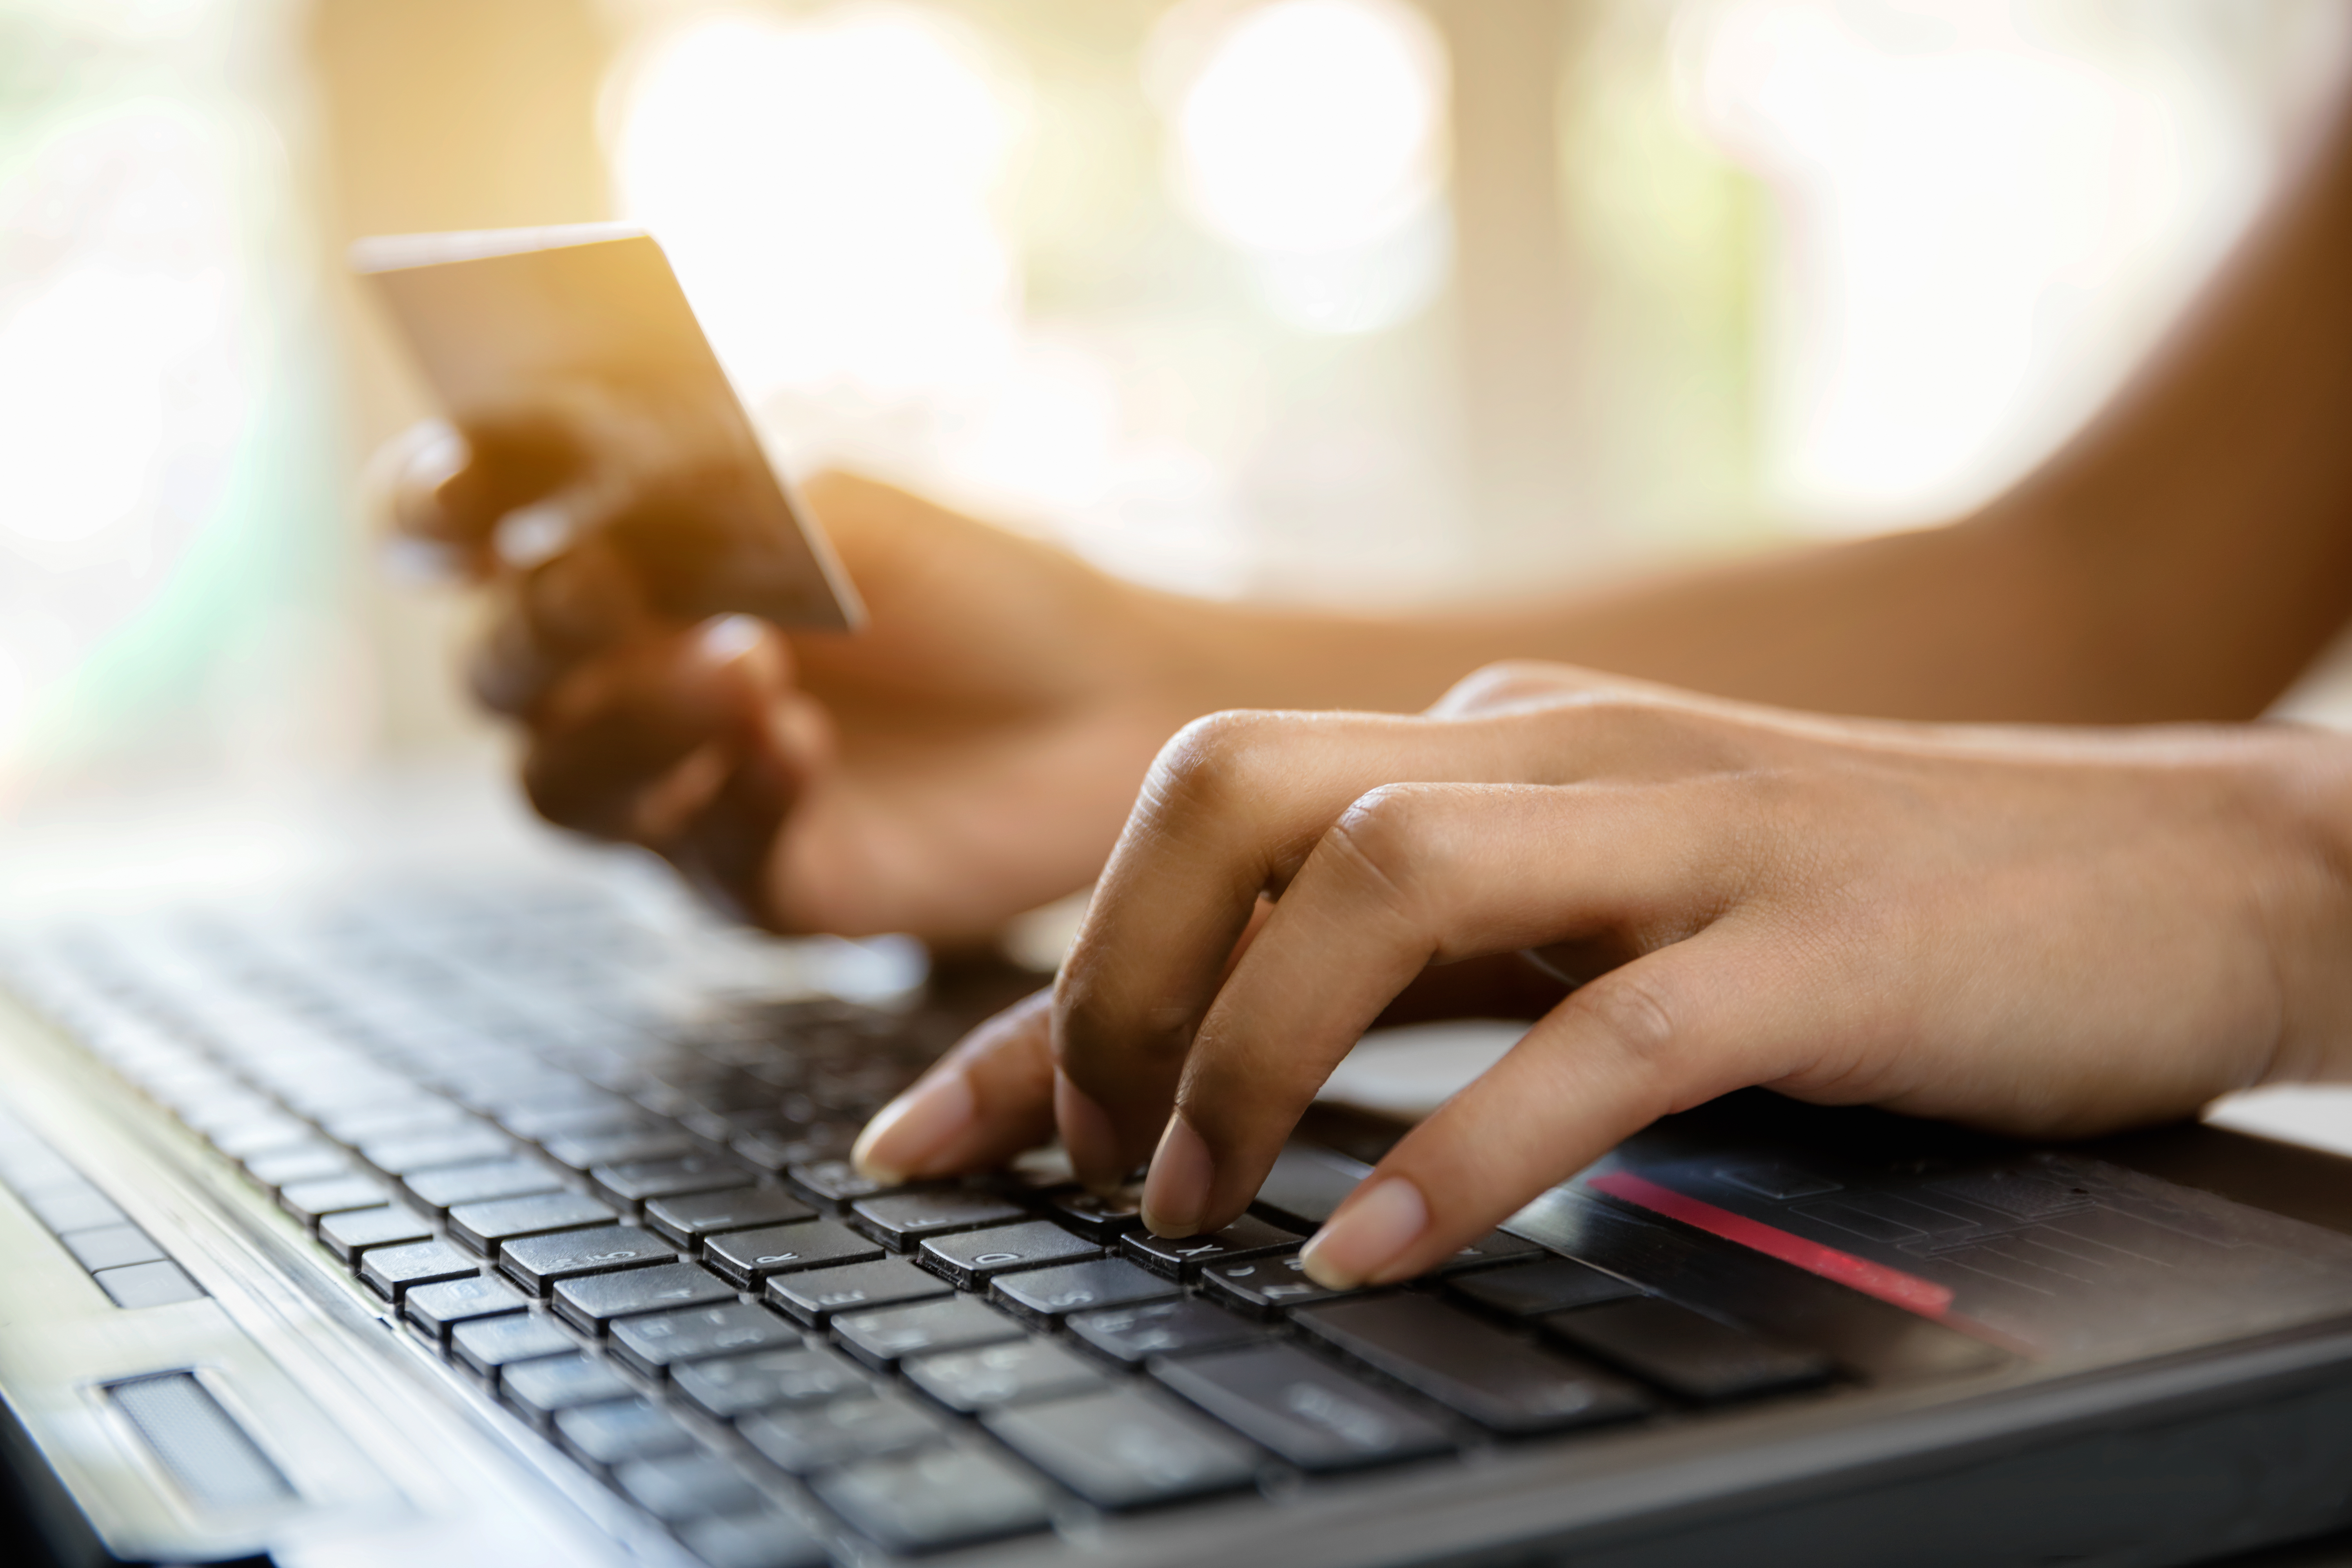 Image of hands holding credit card and using laptop to represent online shopping/e-commerce.